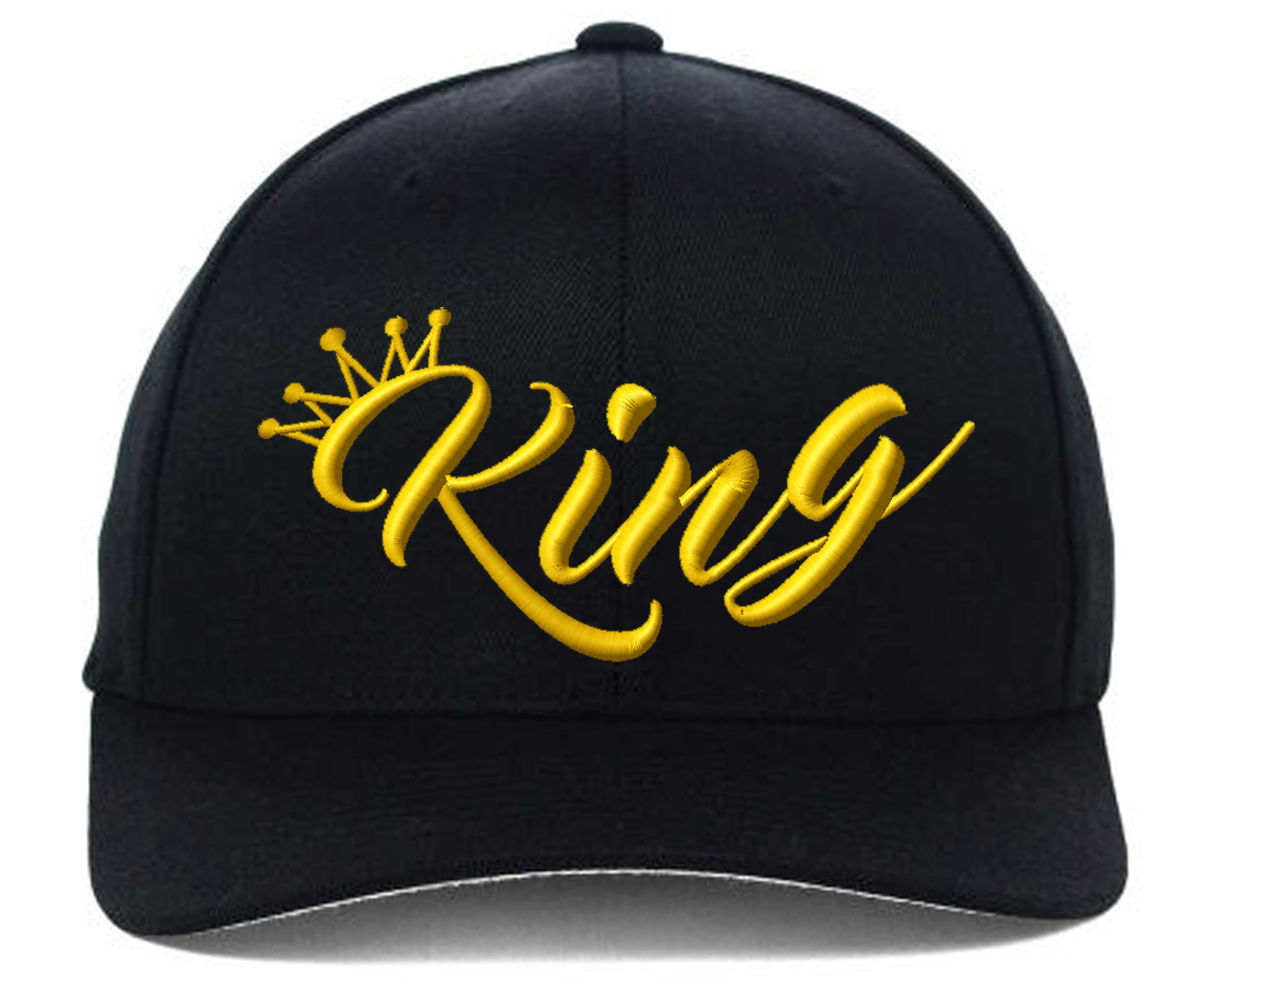 KING Only(New) Flexfit Gold Yellow Thread, Fine Finished Embroidery